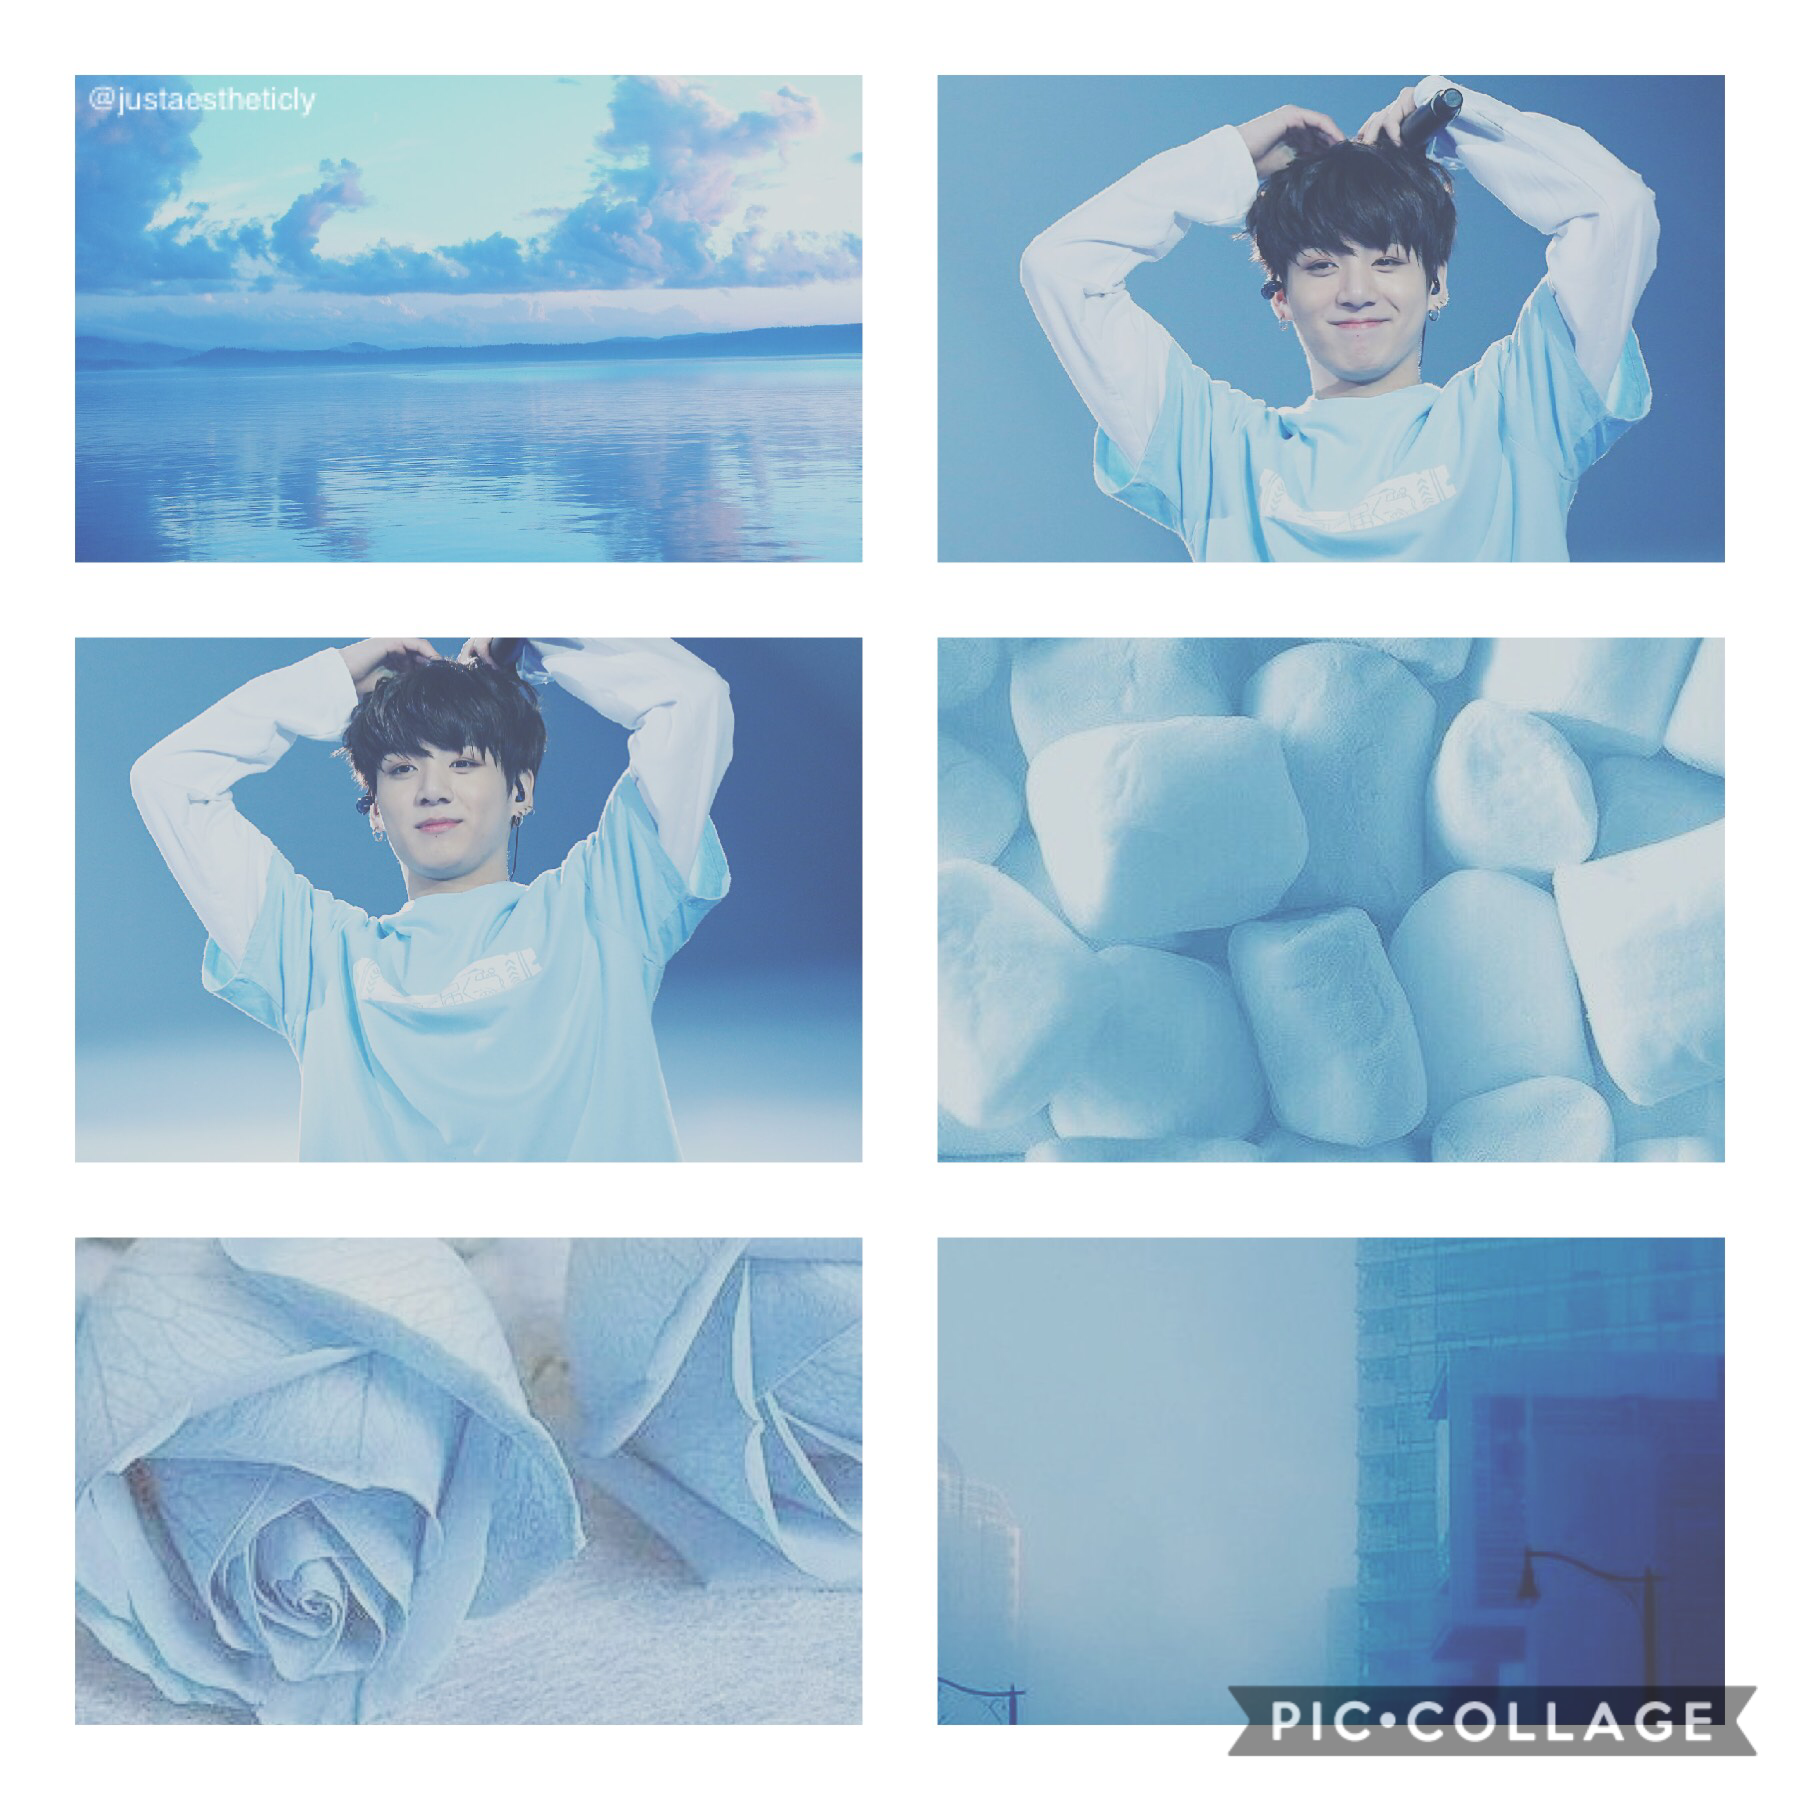 BTS Jungkook TaP Jungkook light blue Aesthetic/Moodboard Hope y'all like!